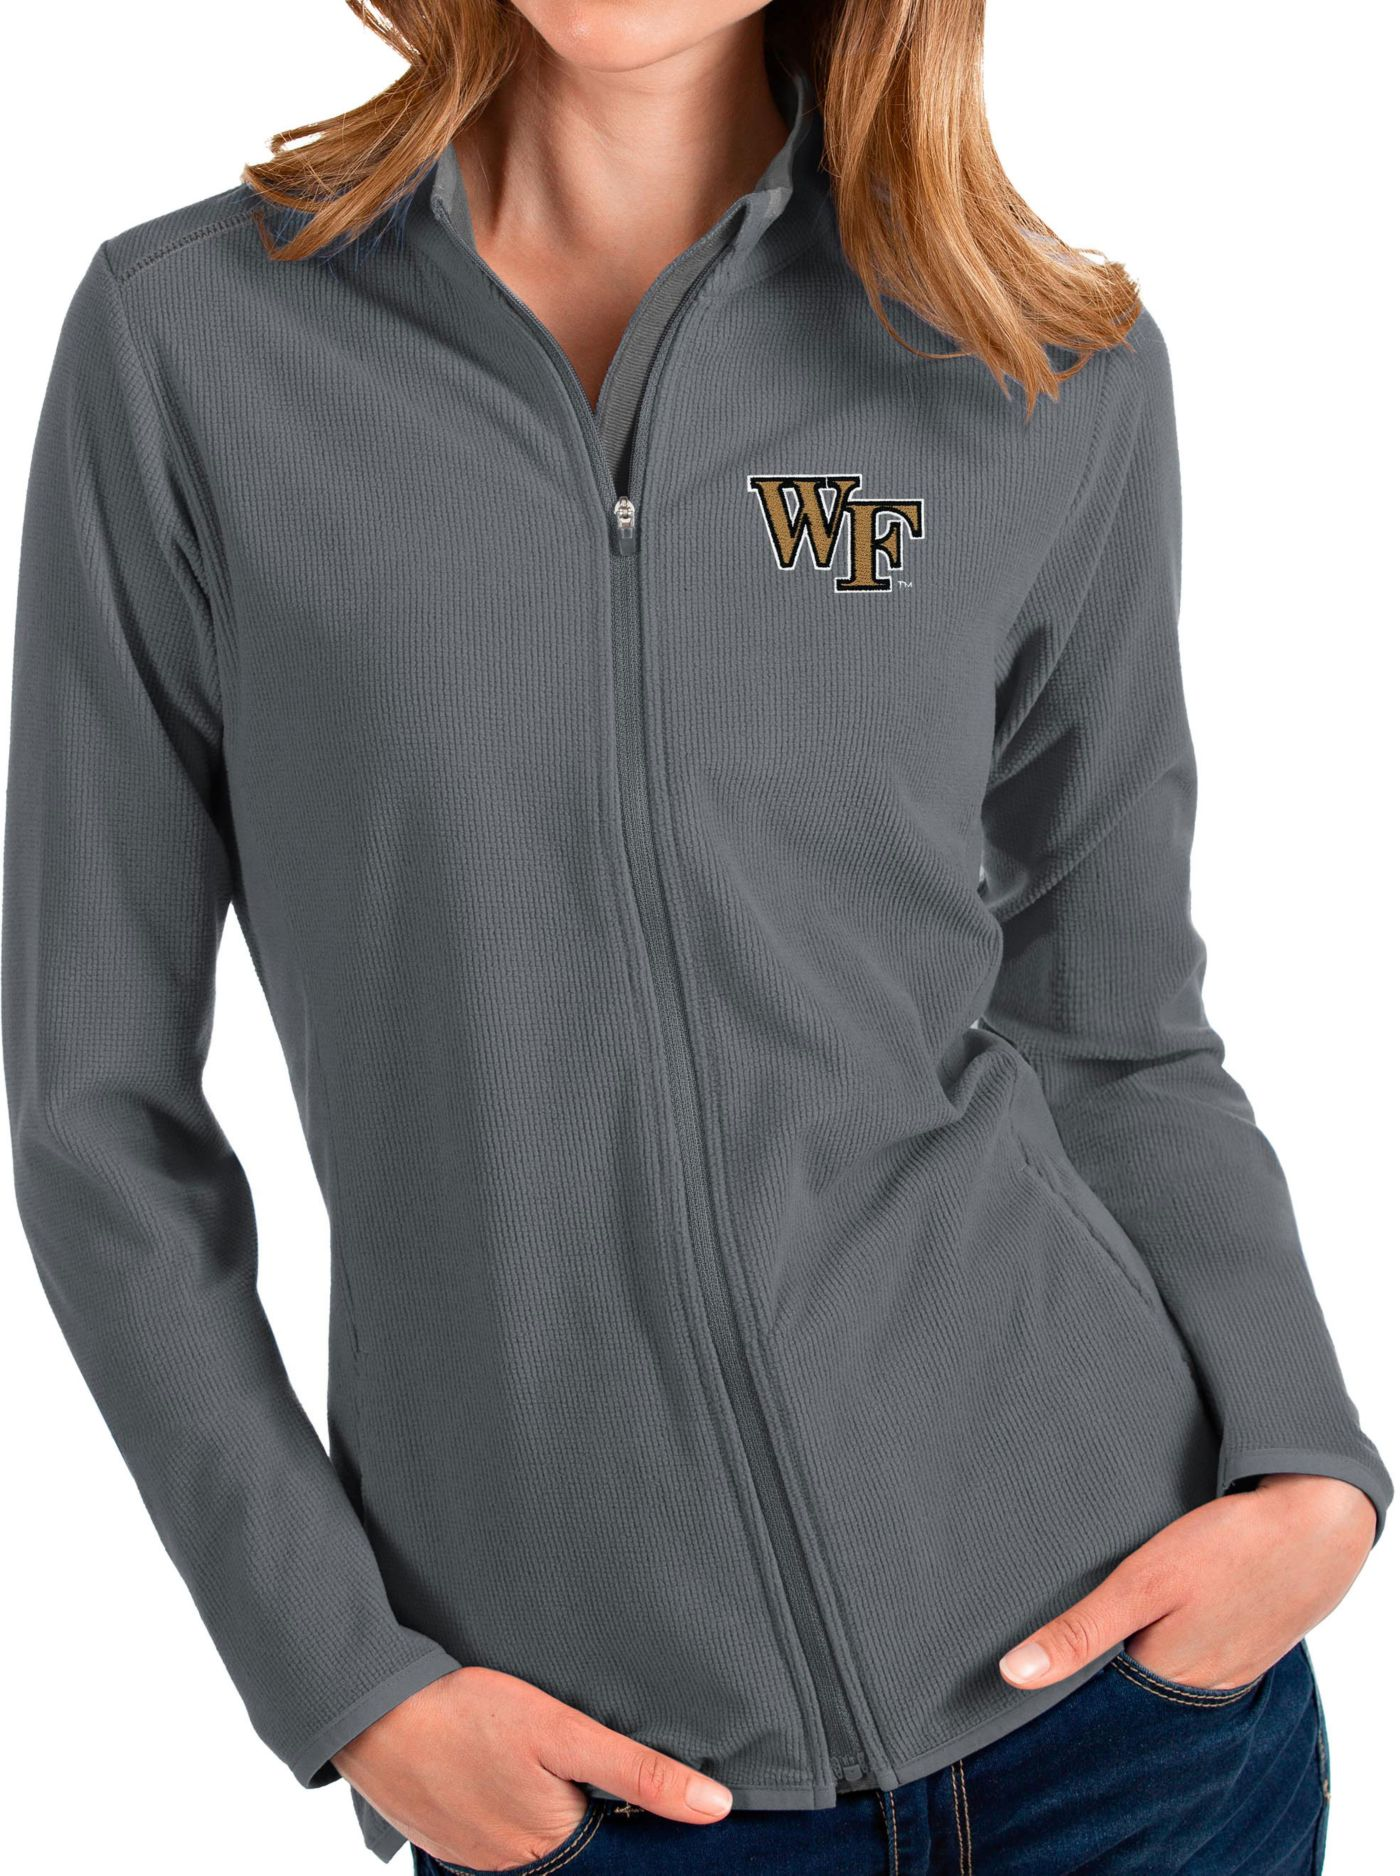 Antigua Women's Wake Forest Demon Deacons Grey Glacier Full-Zip Jacket